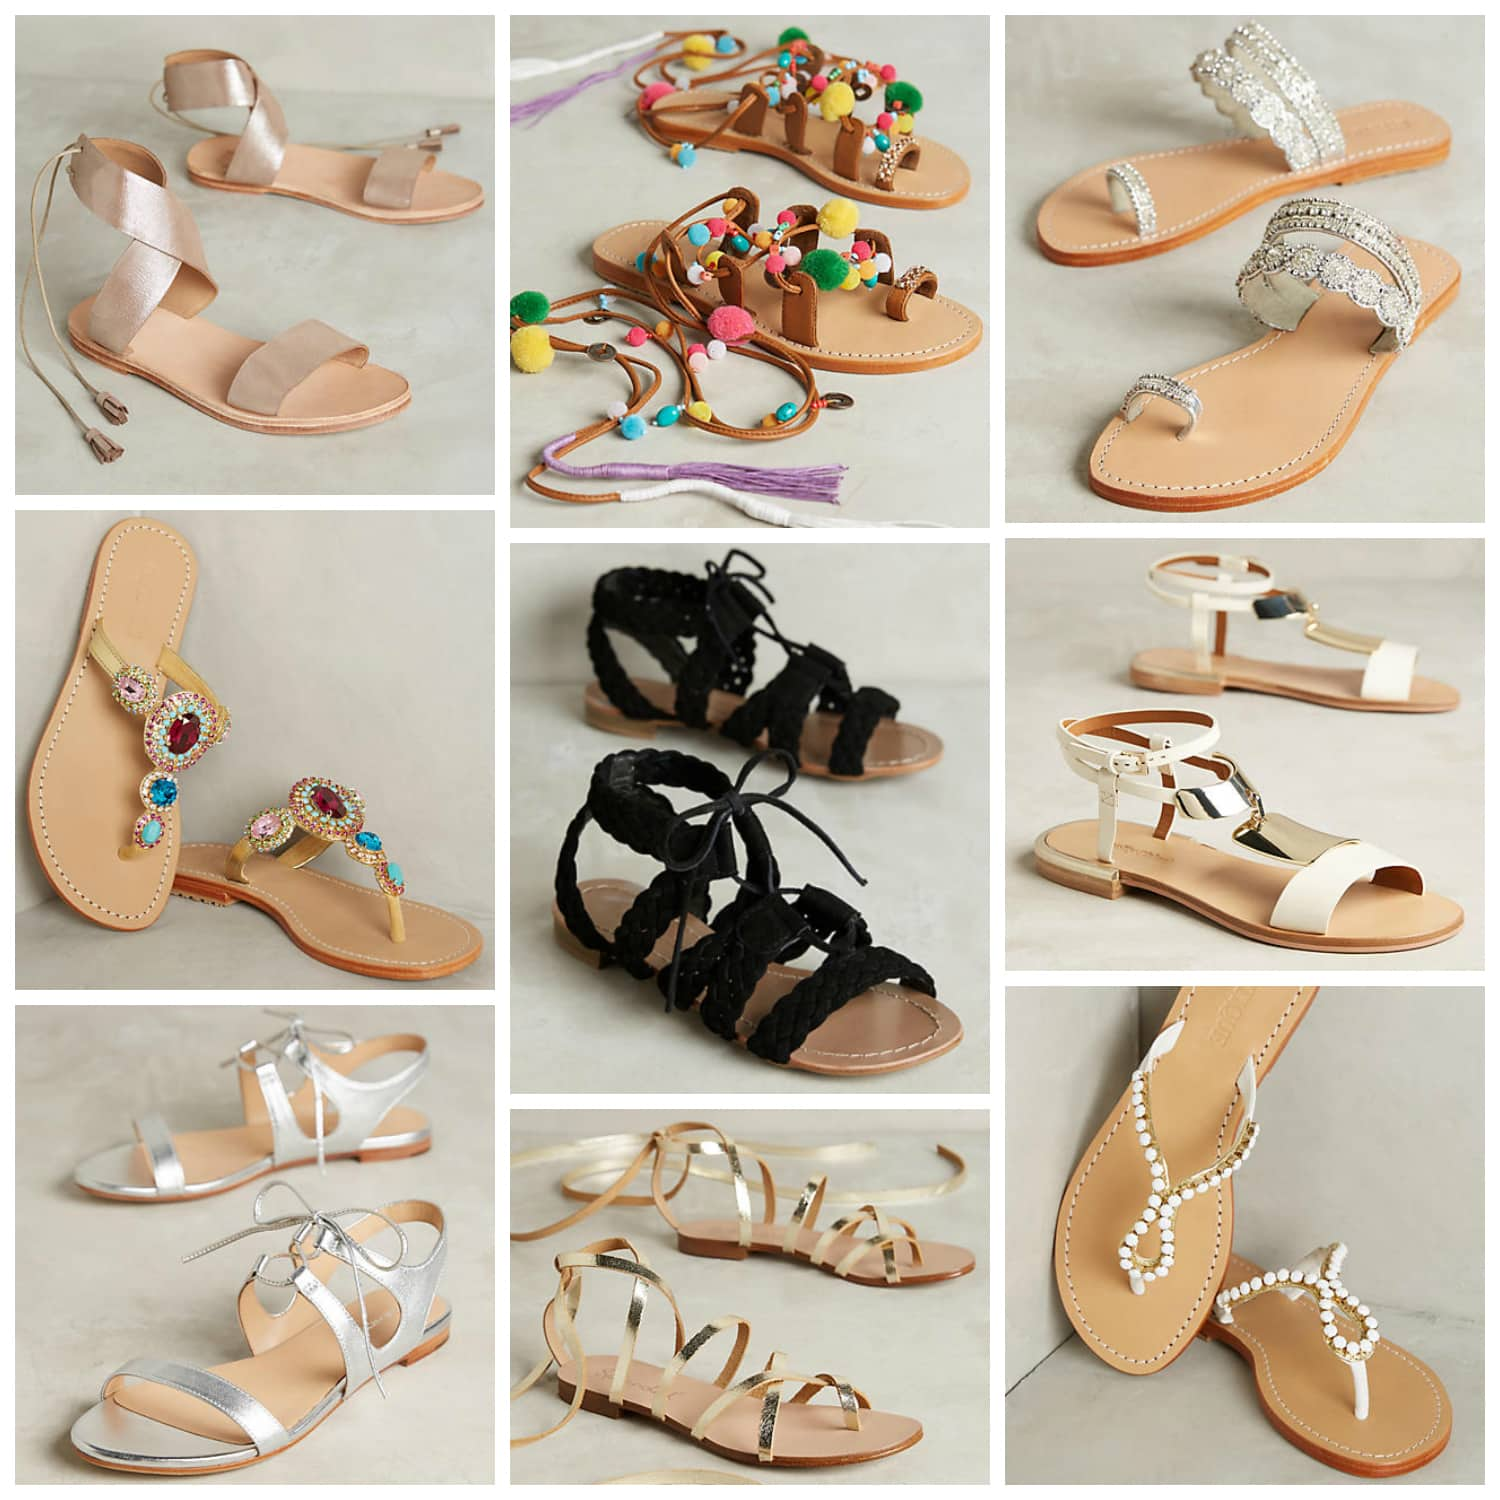 The cutest summer sandals